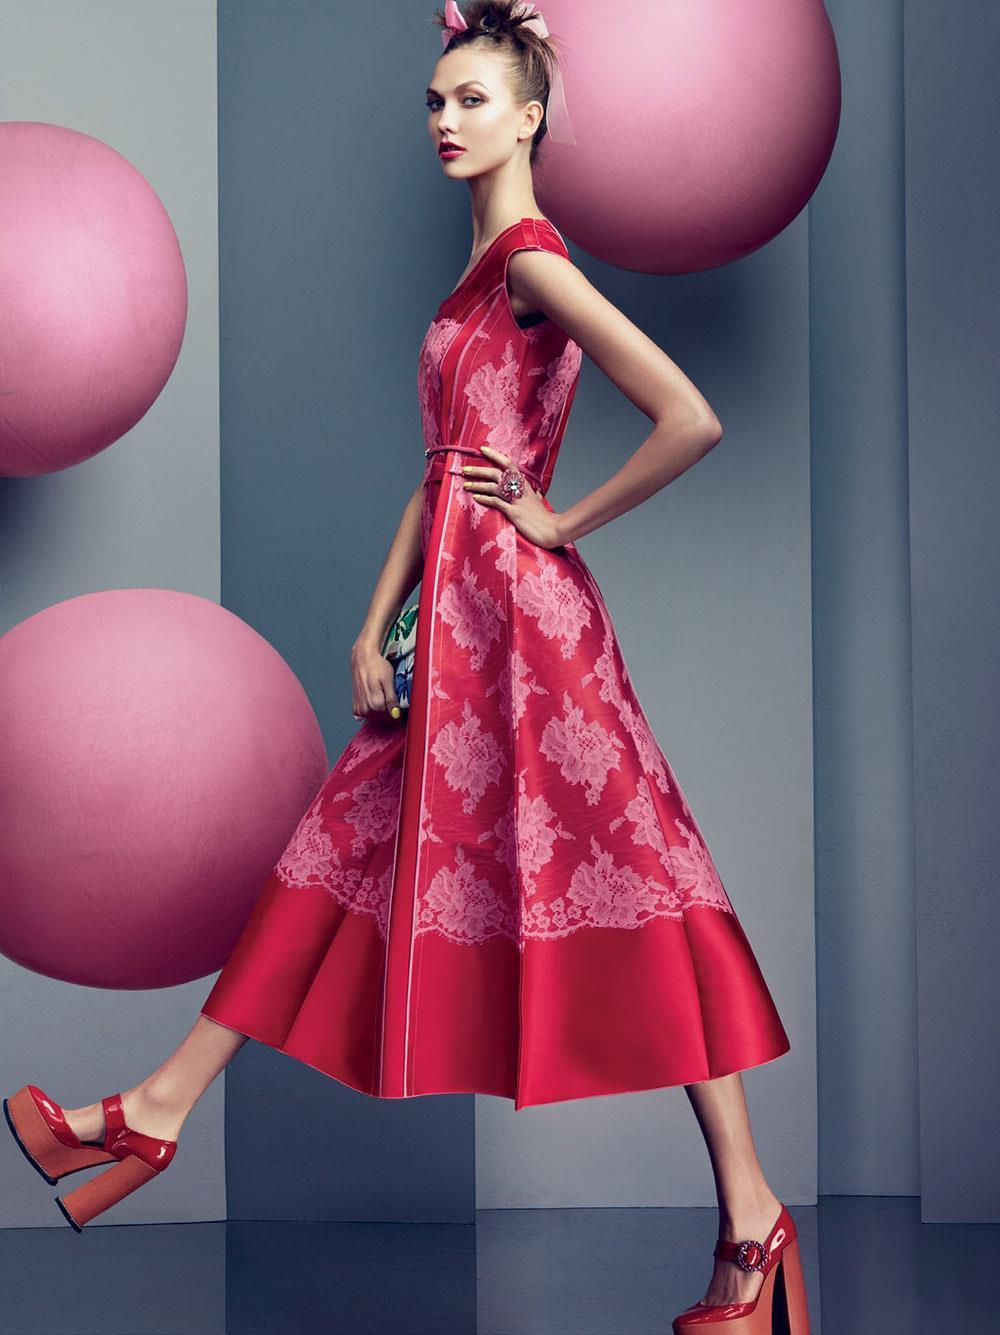 Currently loving: Karlie Kloss featured in the new Marc Jacobs Resort 2013 ads as seen in Vogue.